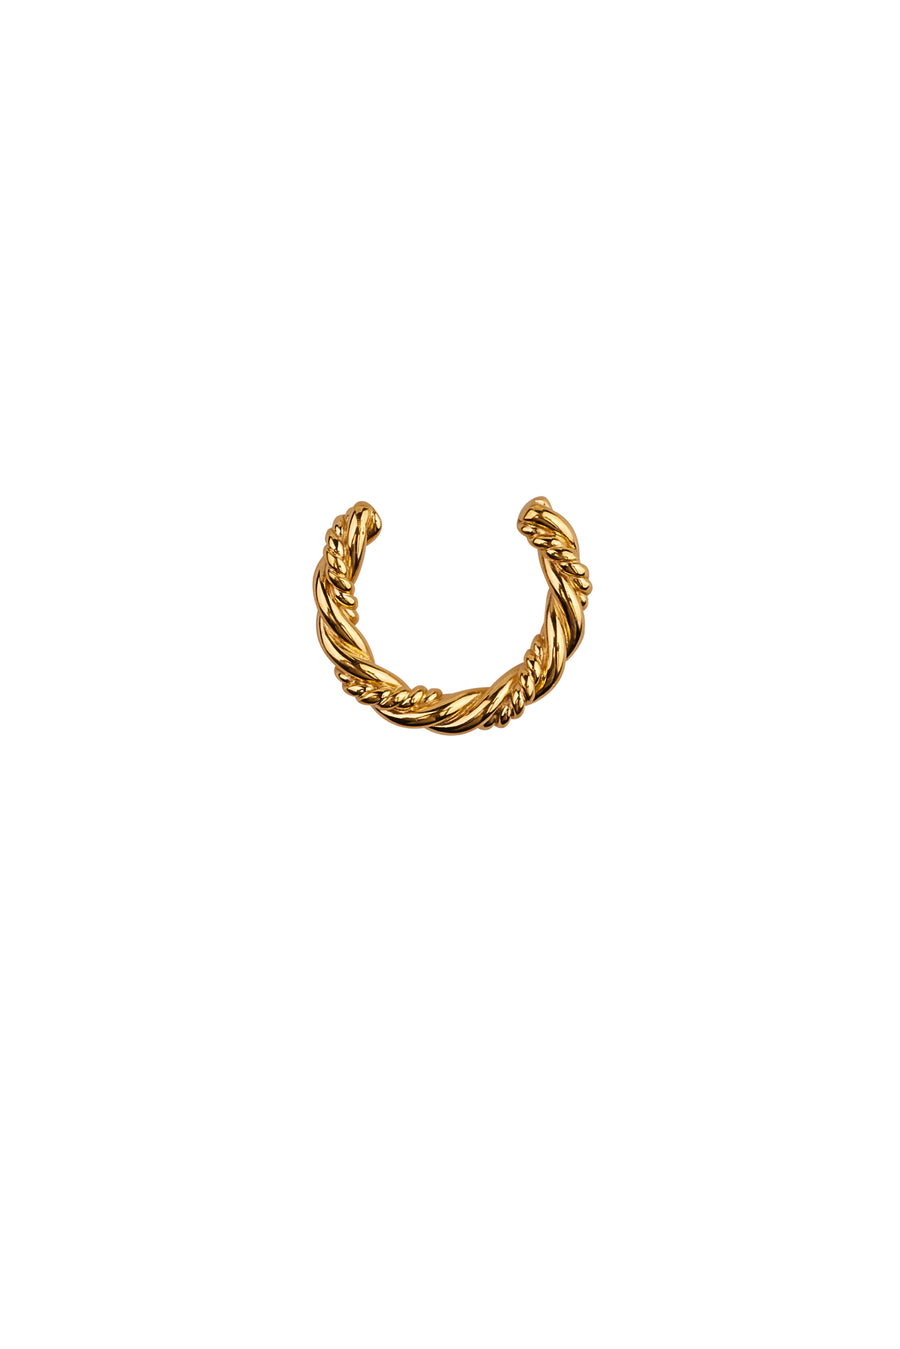 Xzota | Oorbellen | Twisted cuff | Gold Plated